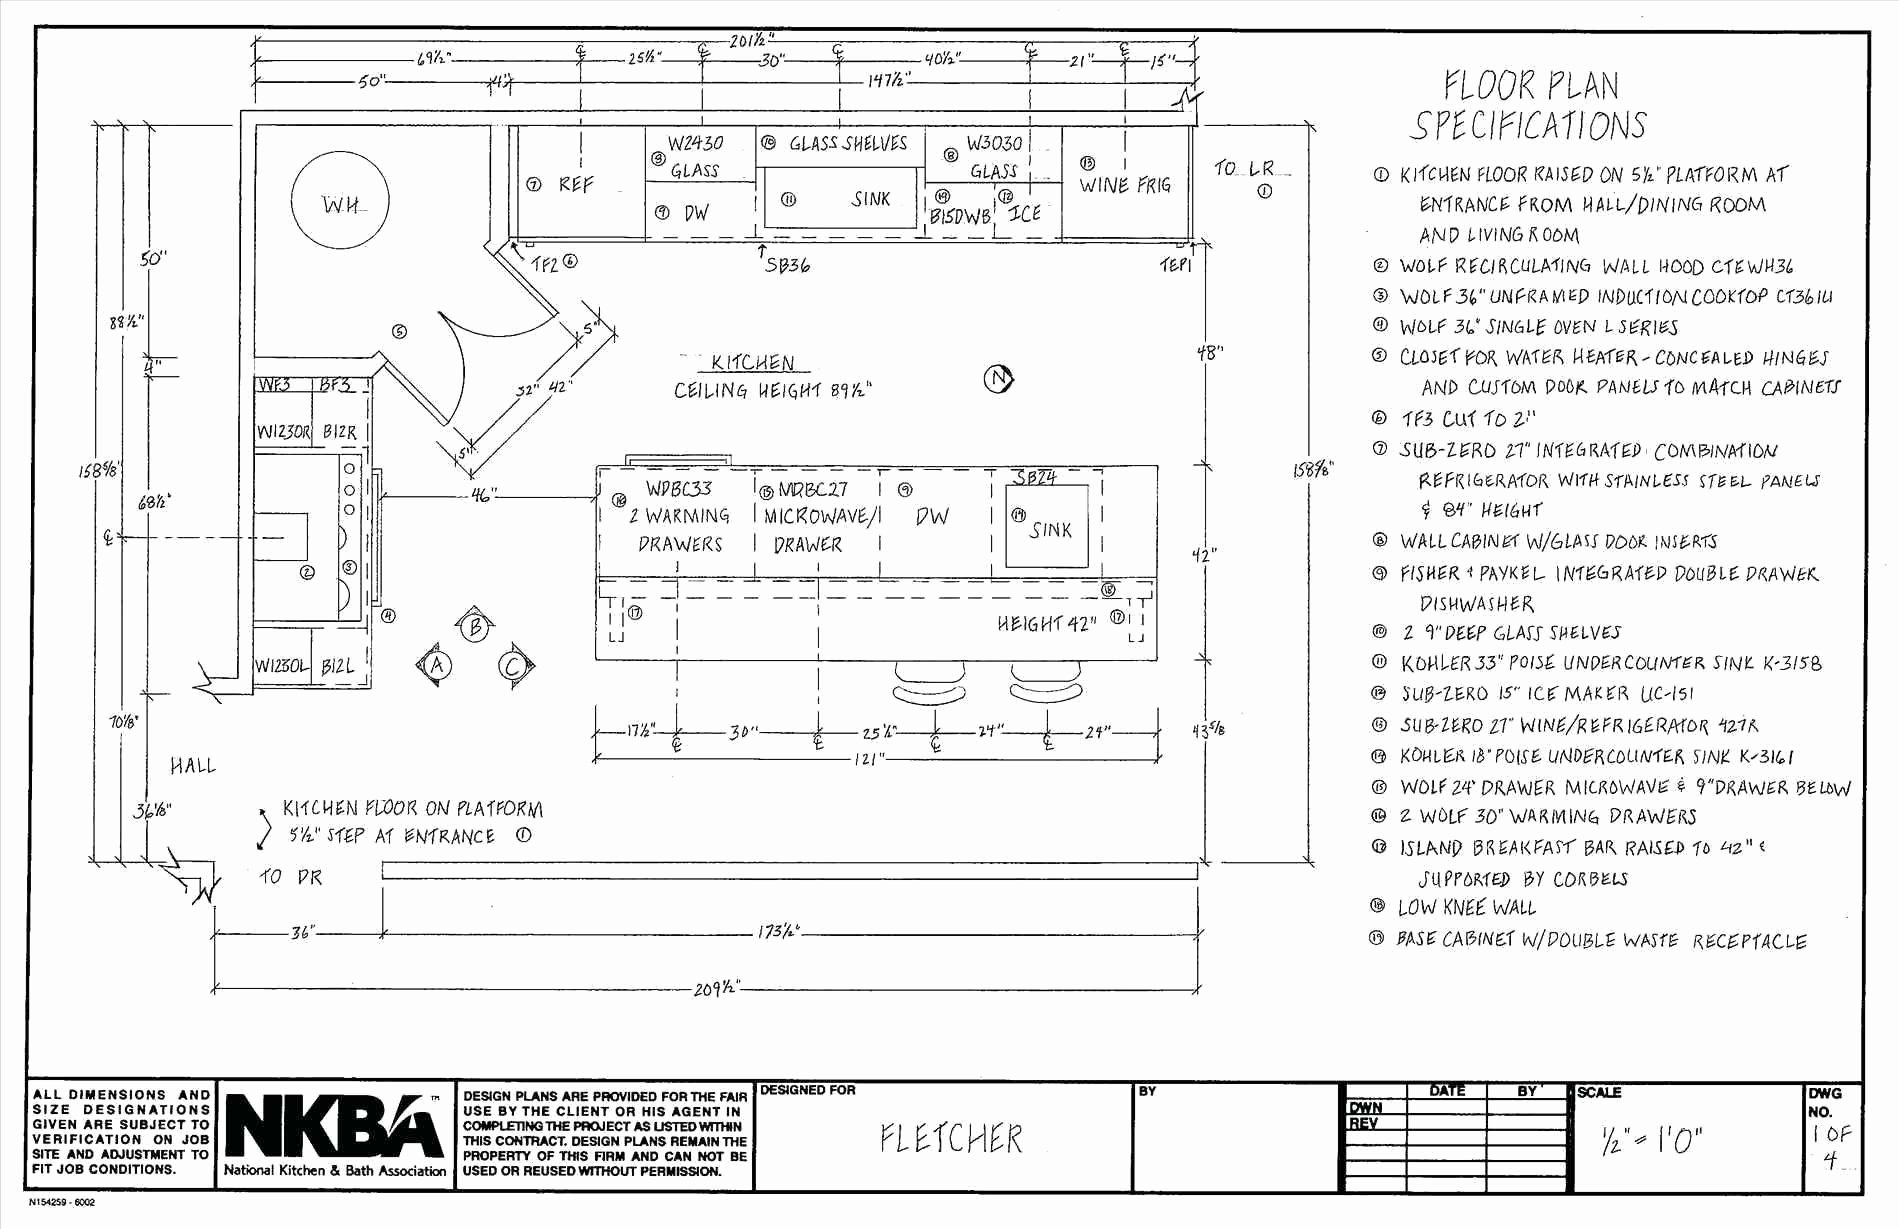 House Renovation Project Plan Template Luxury Template Home Renovation Project Plan Template